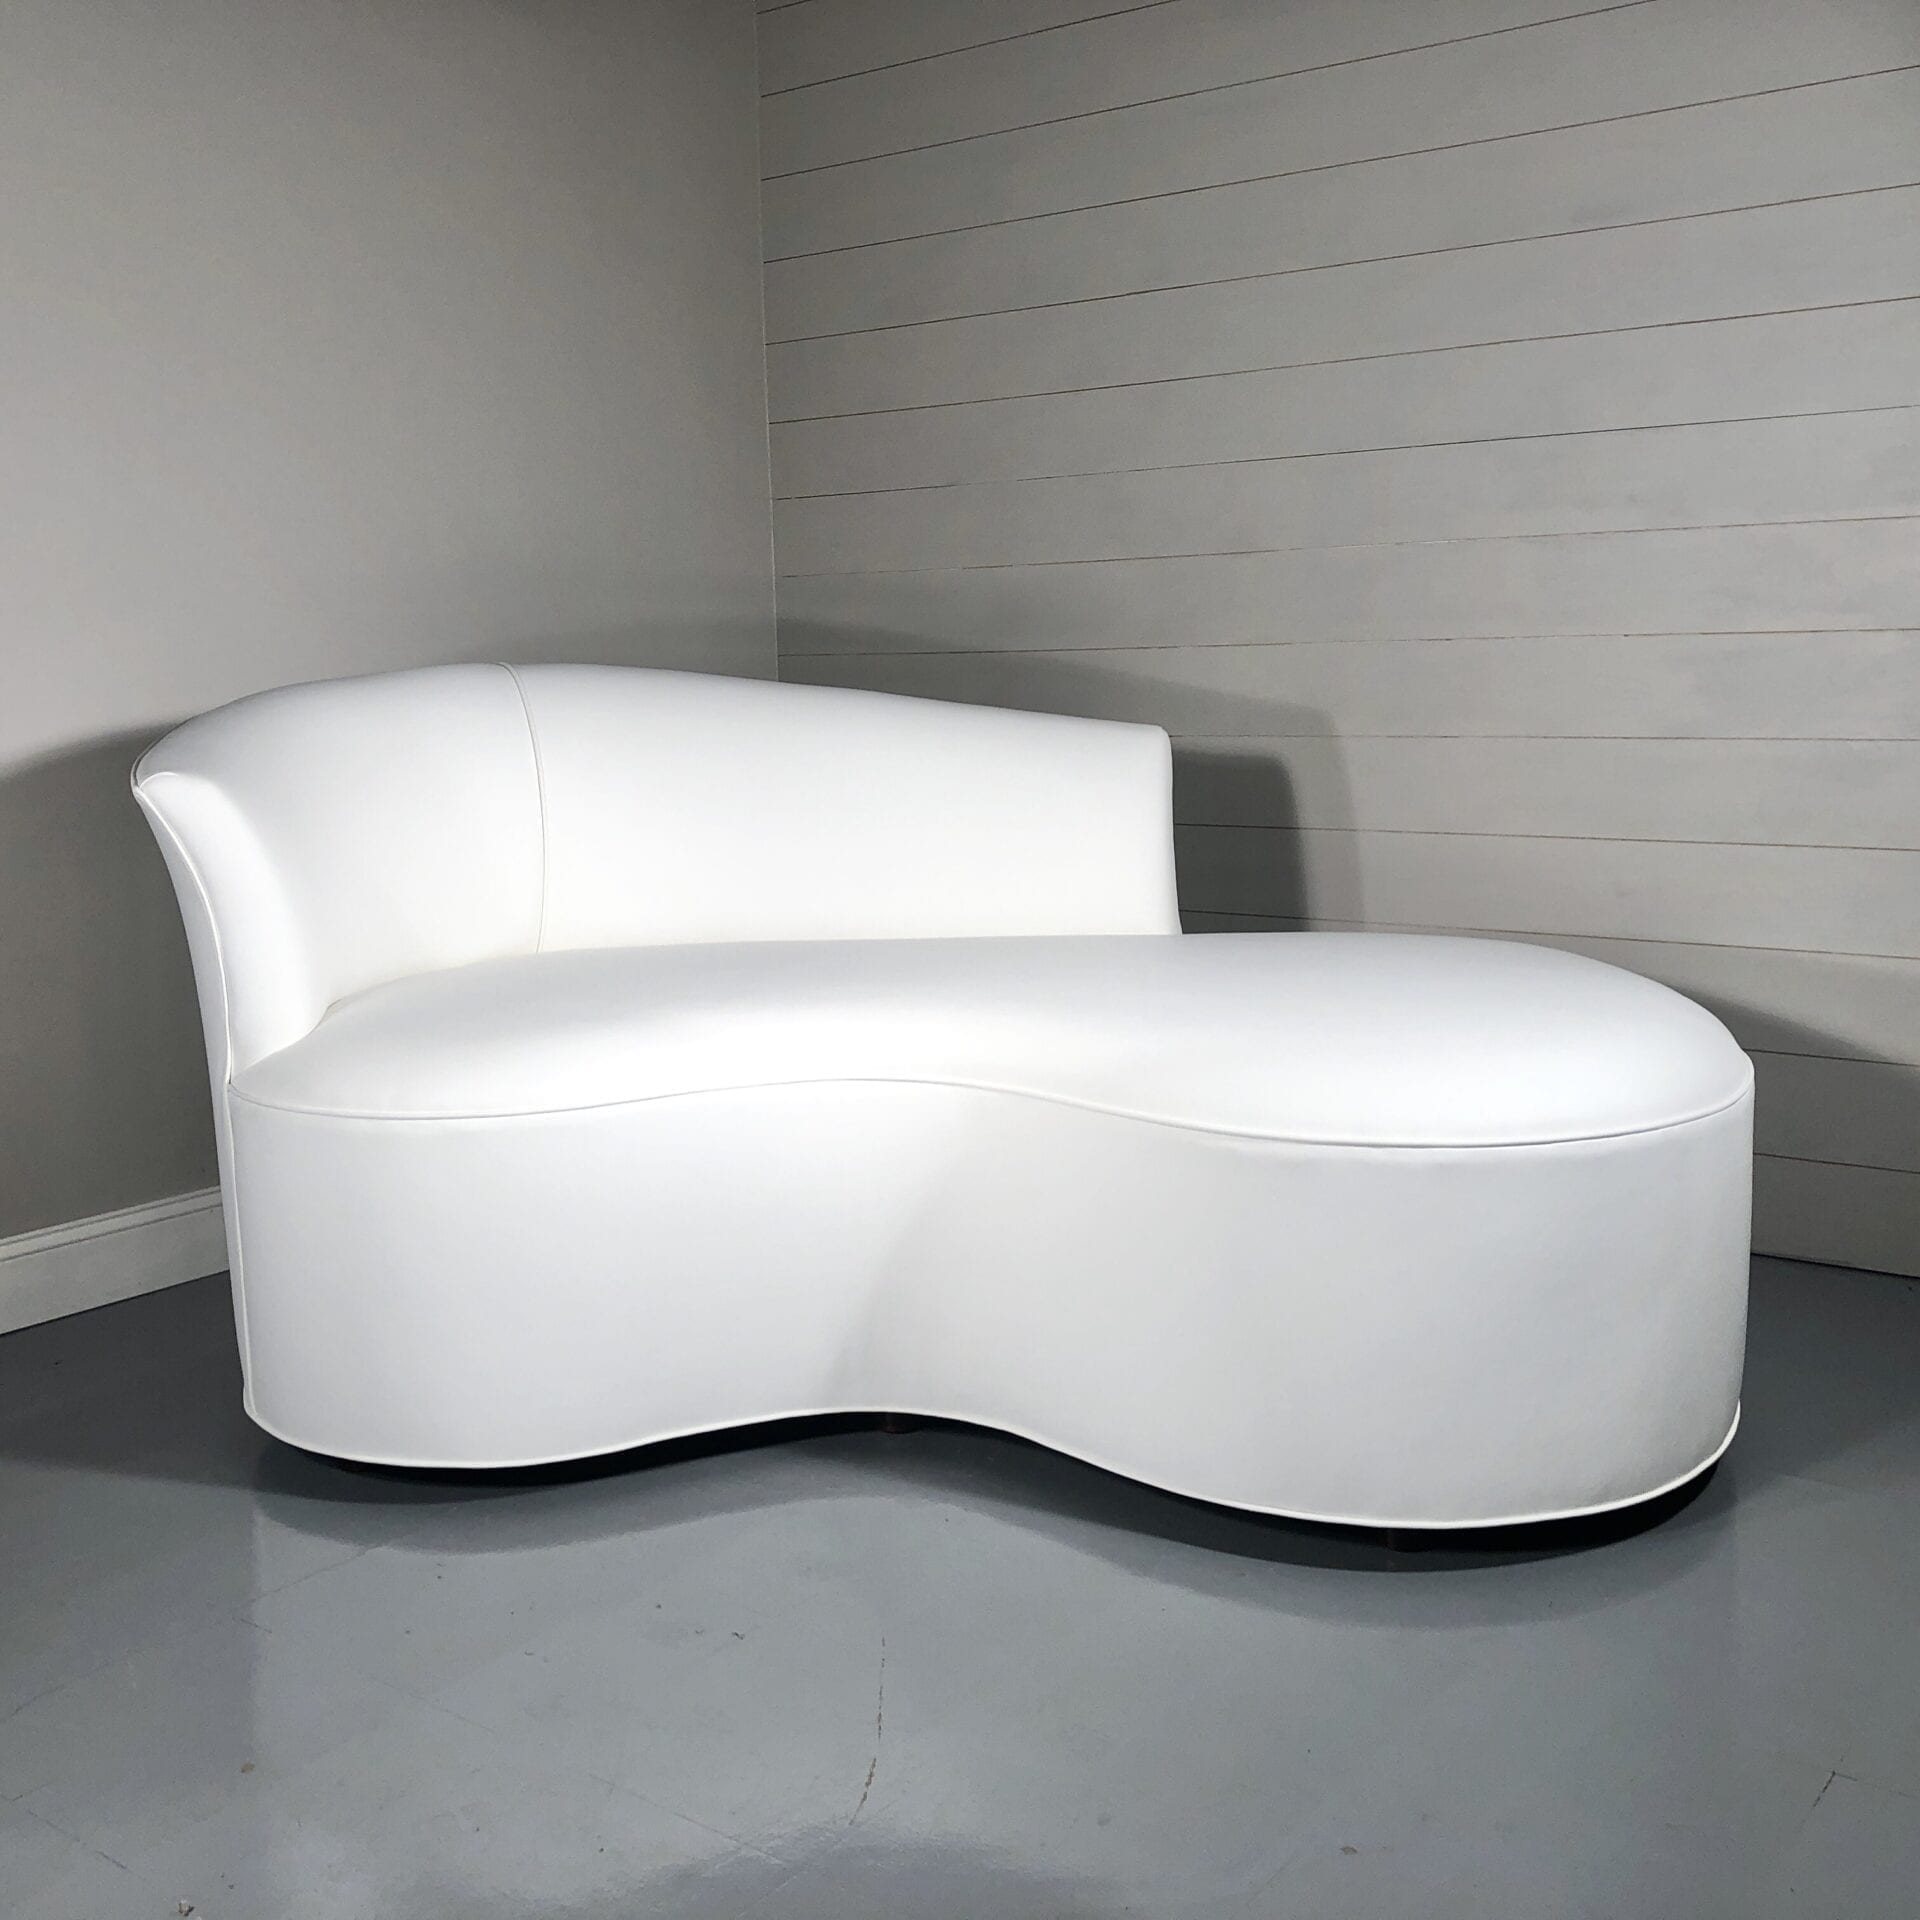 Ellure - upholstered chairs and ottomans - Custom bedroom furniture with high end, bedroom textiles | Blend Home Furnishings